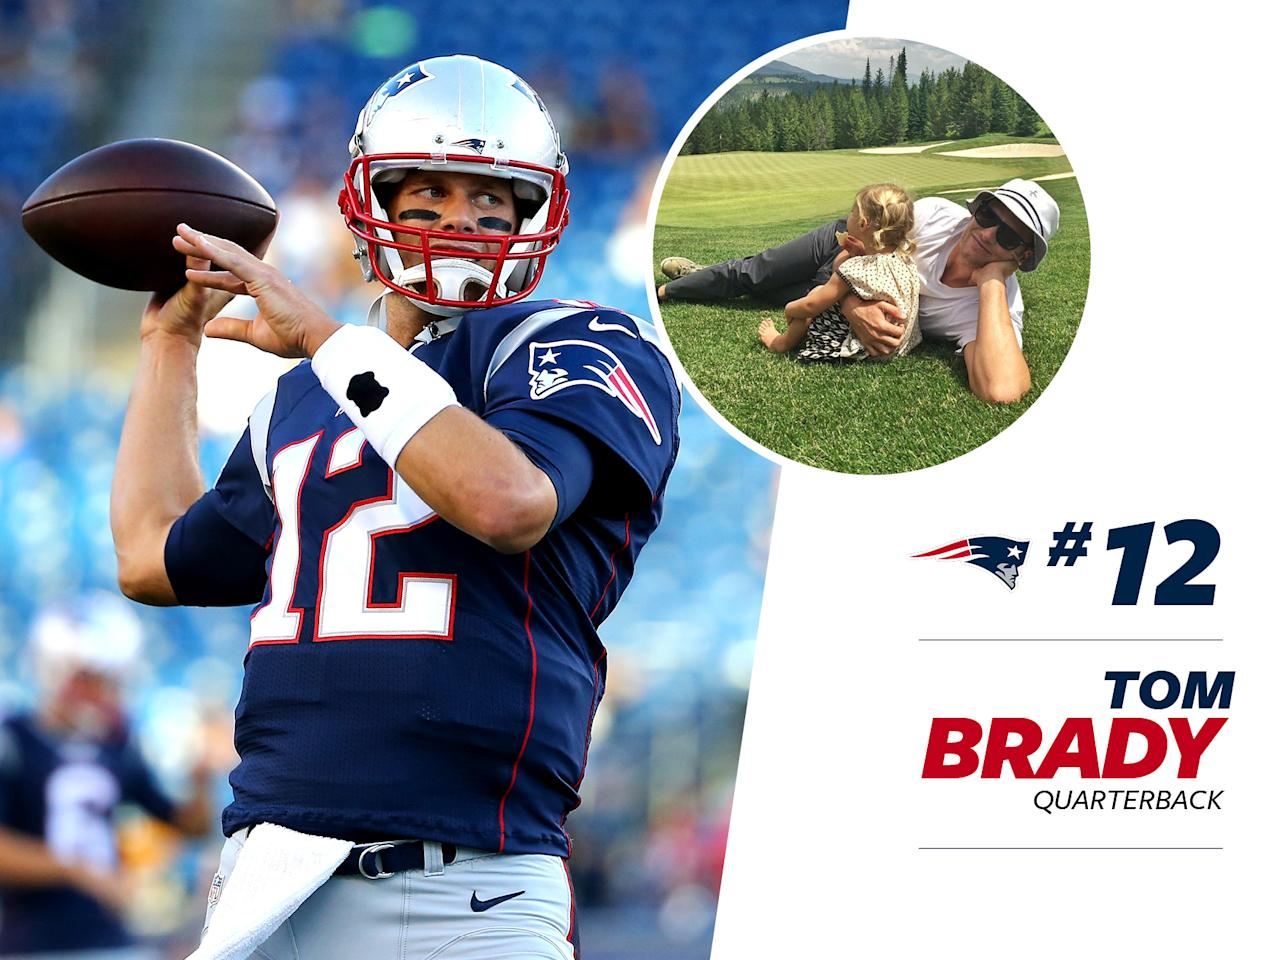 """<p>Patriot's quarterback Tom Brady is a style star in his own right — without the help of supermodel wife, Gisele Bündchen. Not counting the <a rel=""""nofollow"""" href=""""http://sports.yahoo.com/m/50d758df-728d-3ee5-b31c-fa0dd4e7693c/ss_tom-brady-wears-massive-coat.html"""">ridiculous coat</a>he wore against the Steelers, Brady's had some standout fashion moments, and <a rel=""""nofollow"""" href=""""https://www.bloomberg.com/news/articles/2016-09-14/patriots-quarterback-tom-brady-has-some-style-advice-for-you"""">loves to gush about Tom Ford</a>. </p>"""